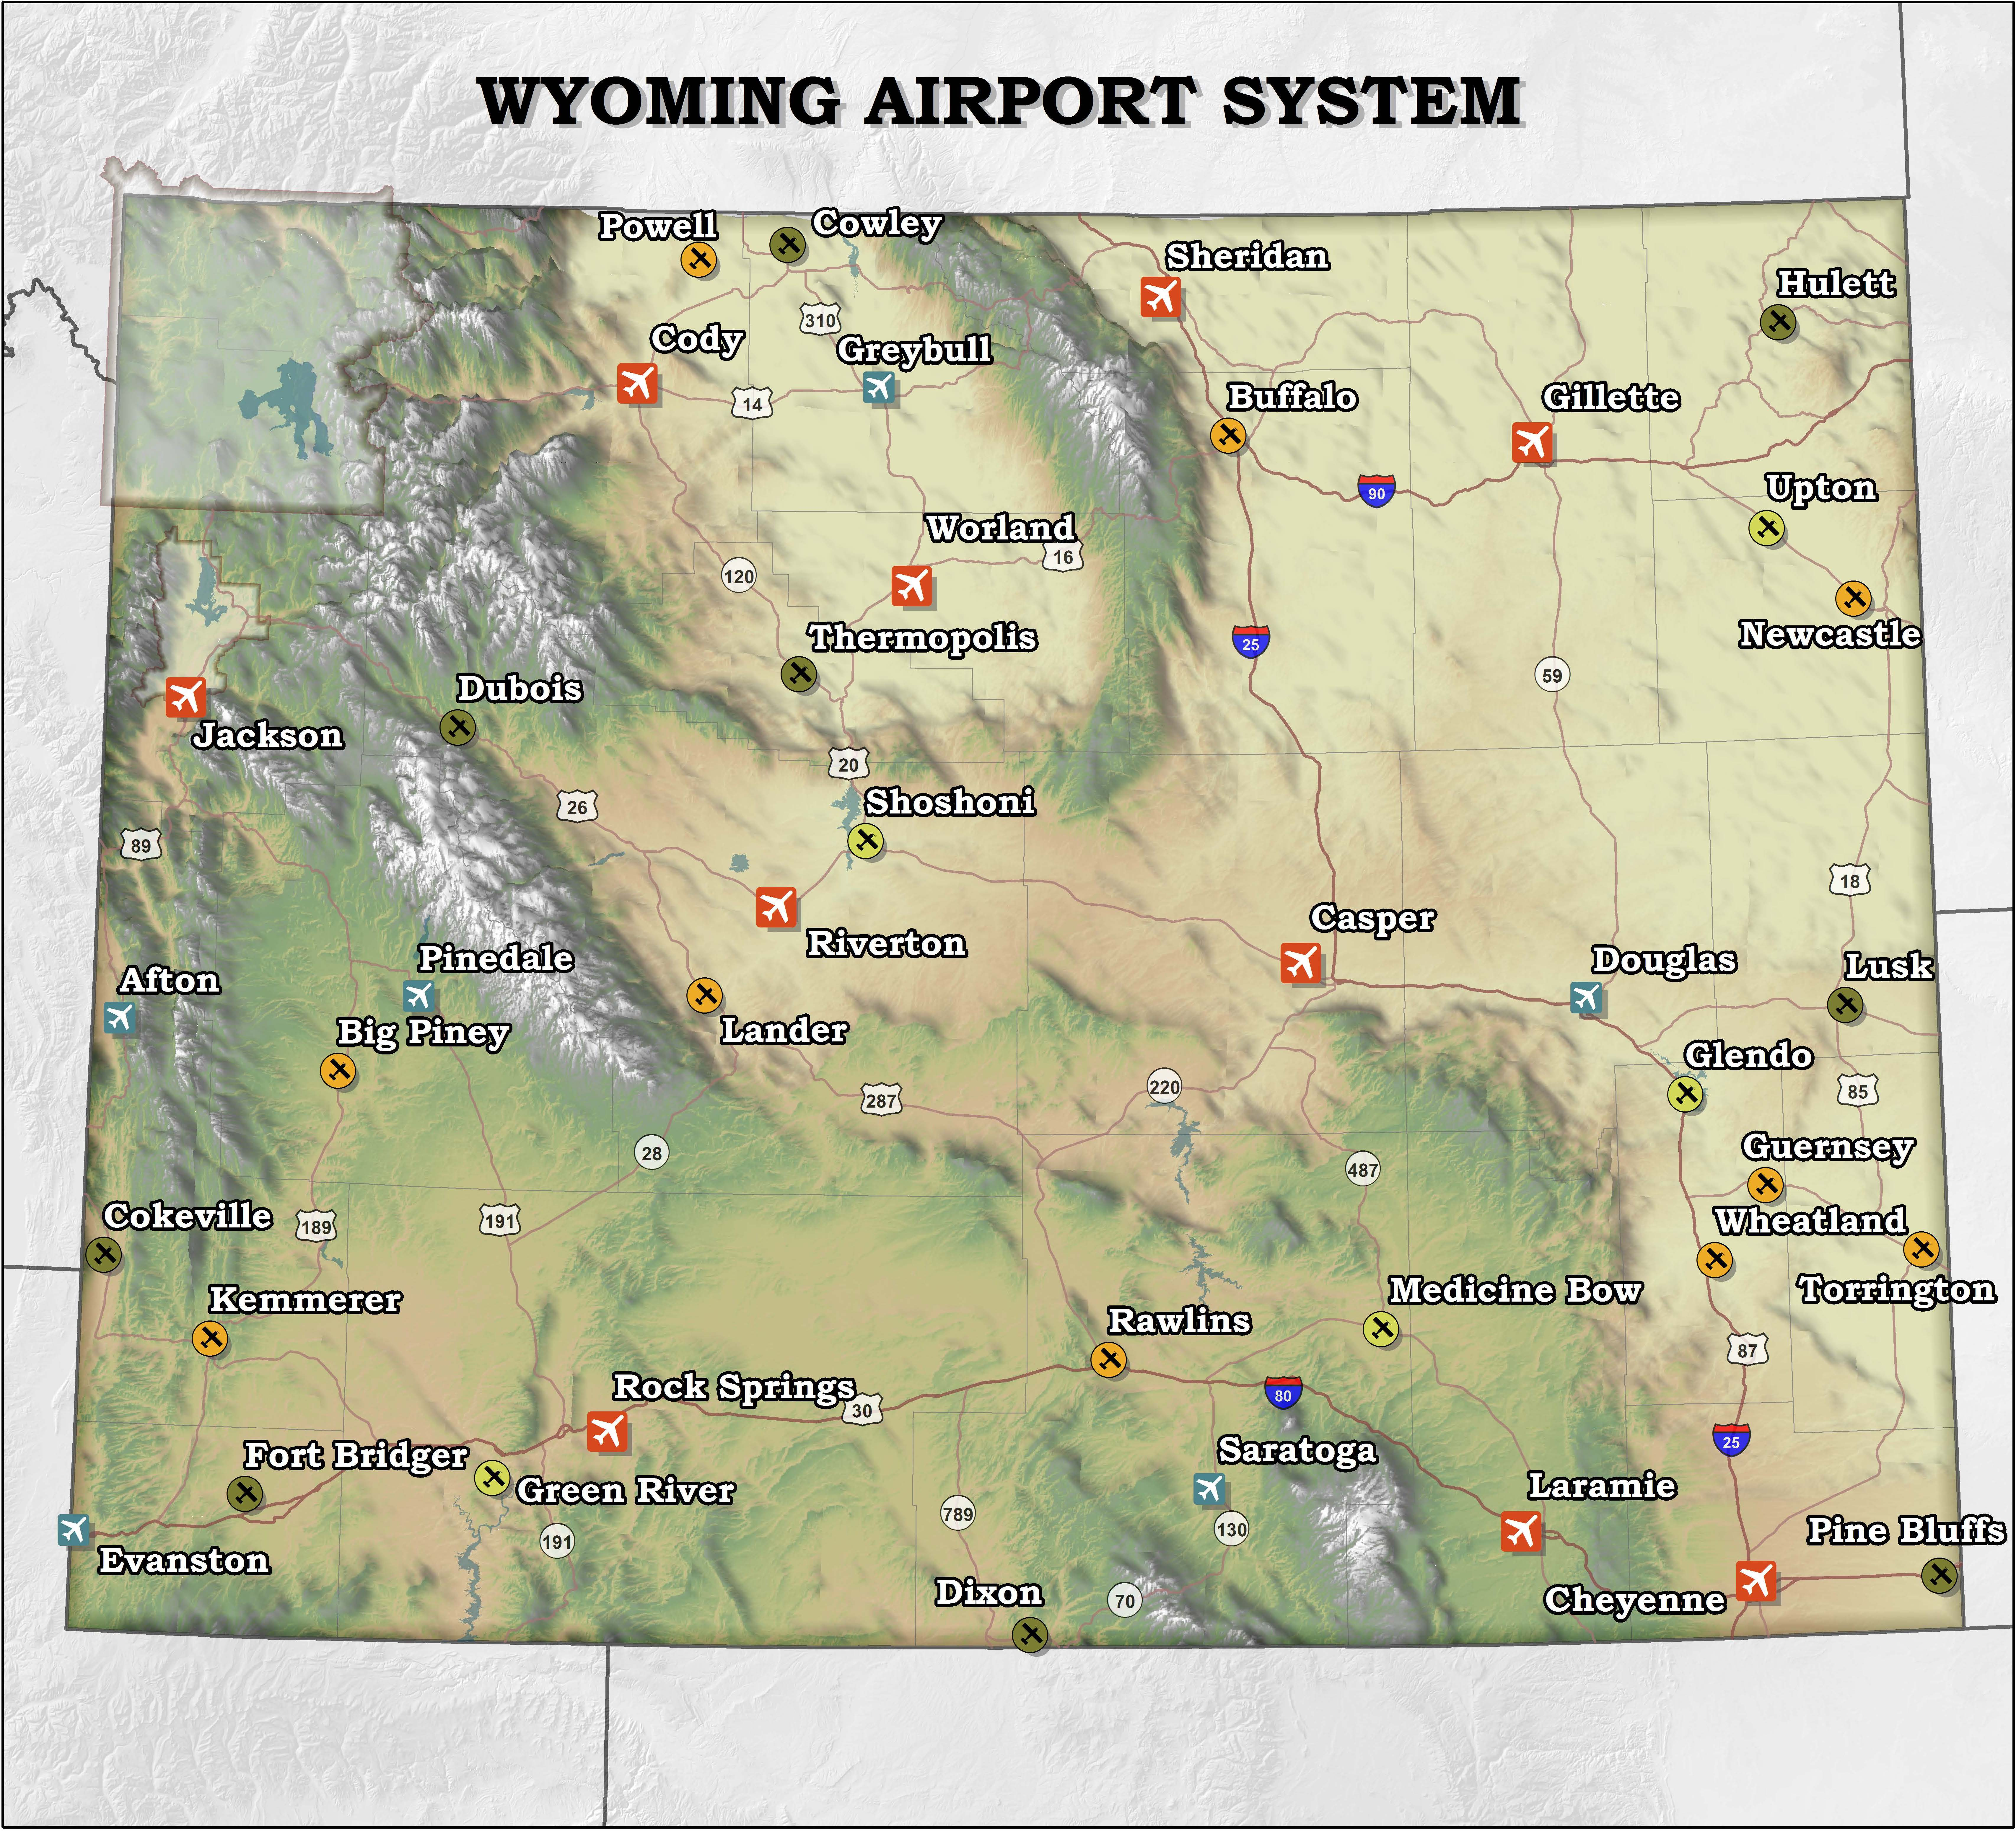 Wyoming_Airport_System_Map_Draft_C_Web_Optimized Cropped.jpg